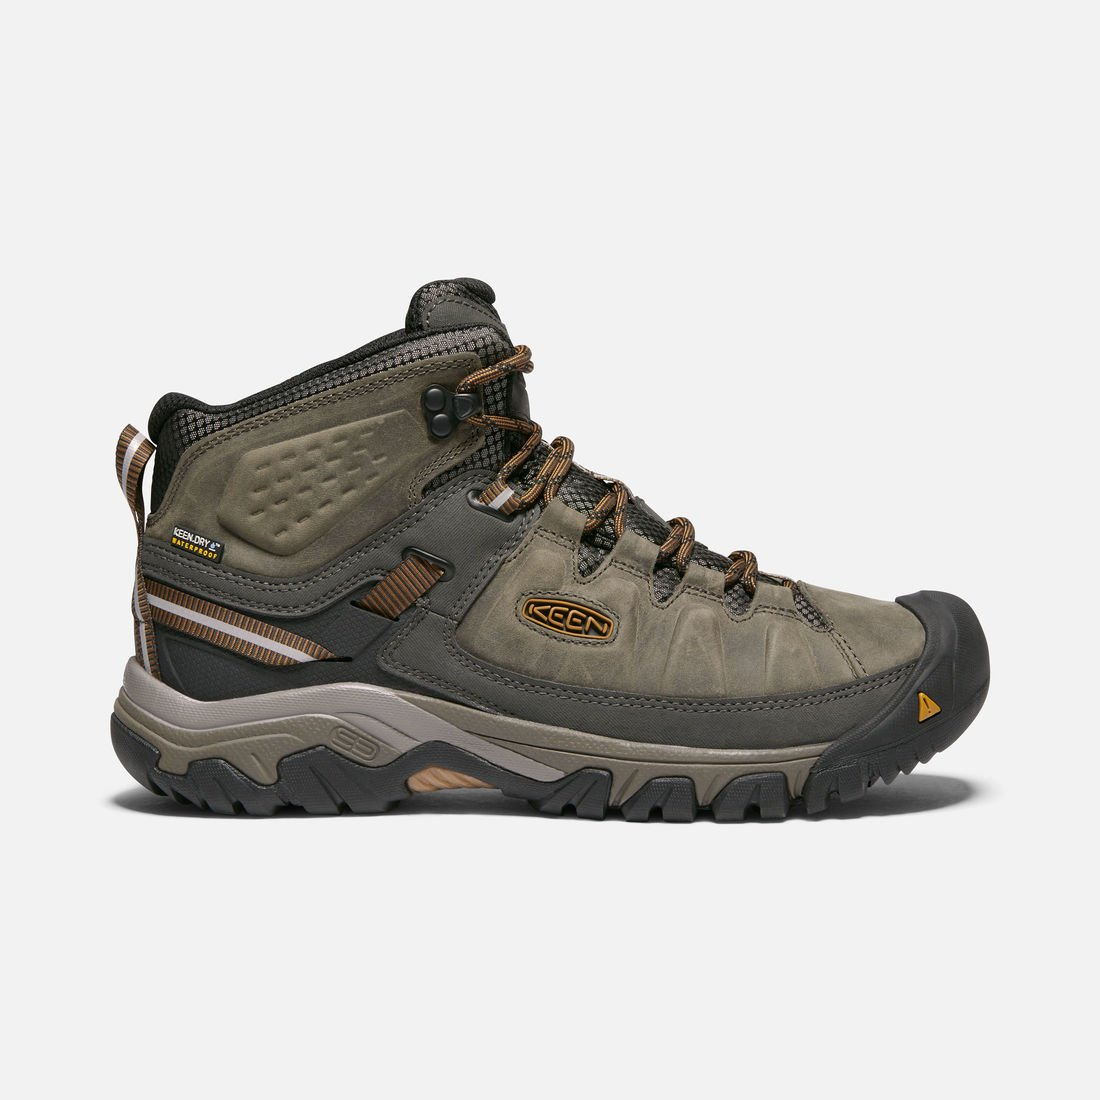 Keen Men's Targhee III Mid Waterproof - OutdoorsInc.com